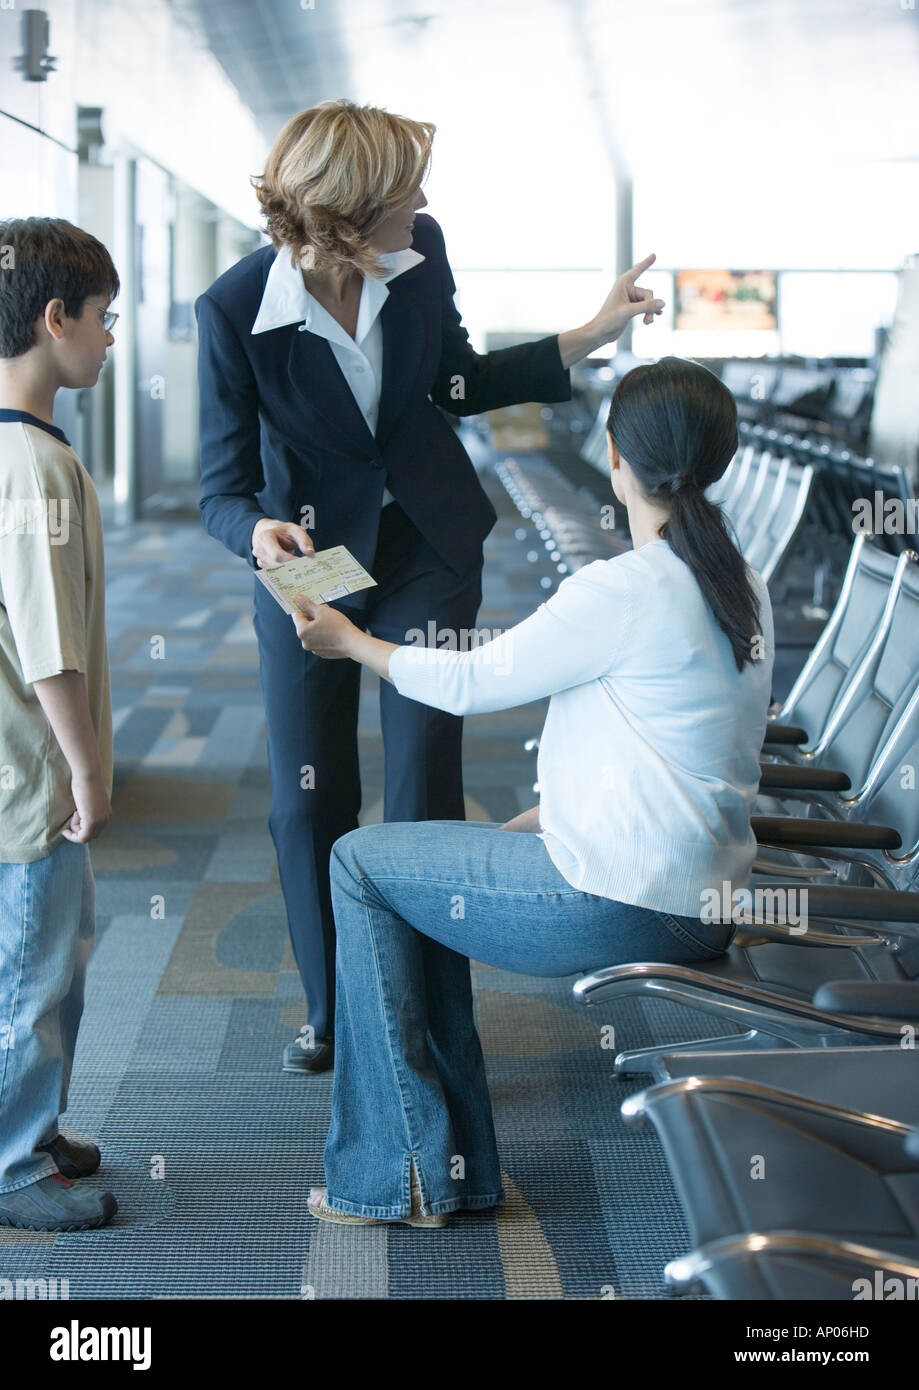 Female traveler showing ticket to airline attendant - Stock Image